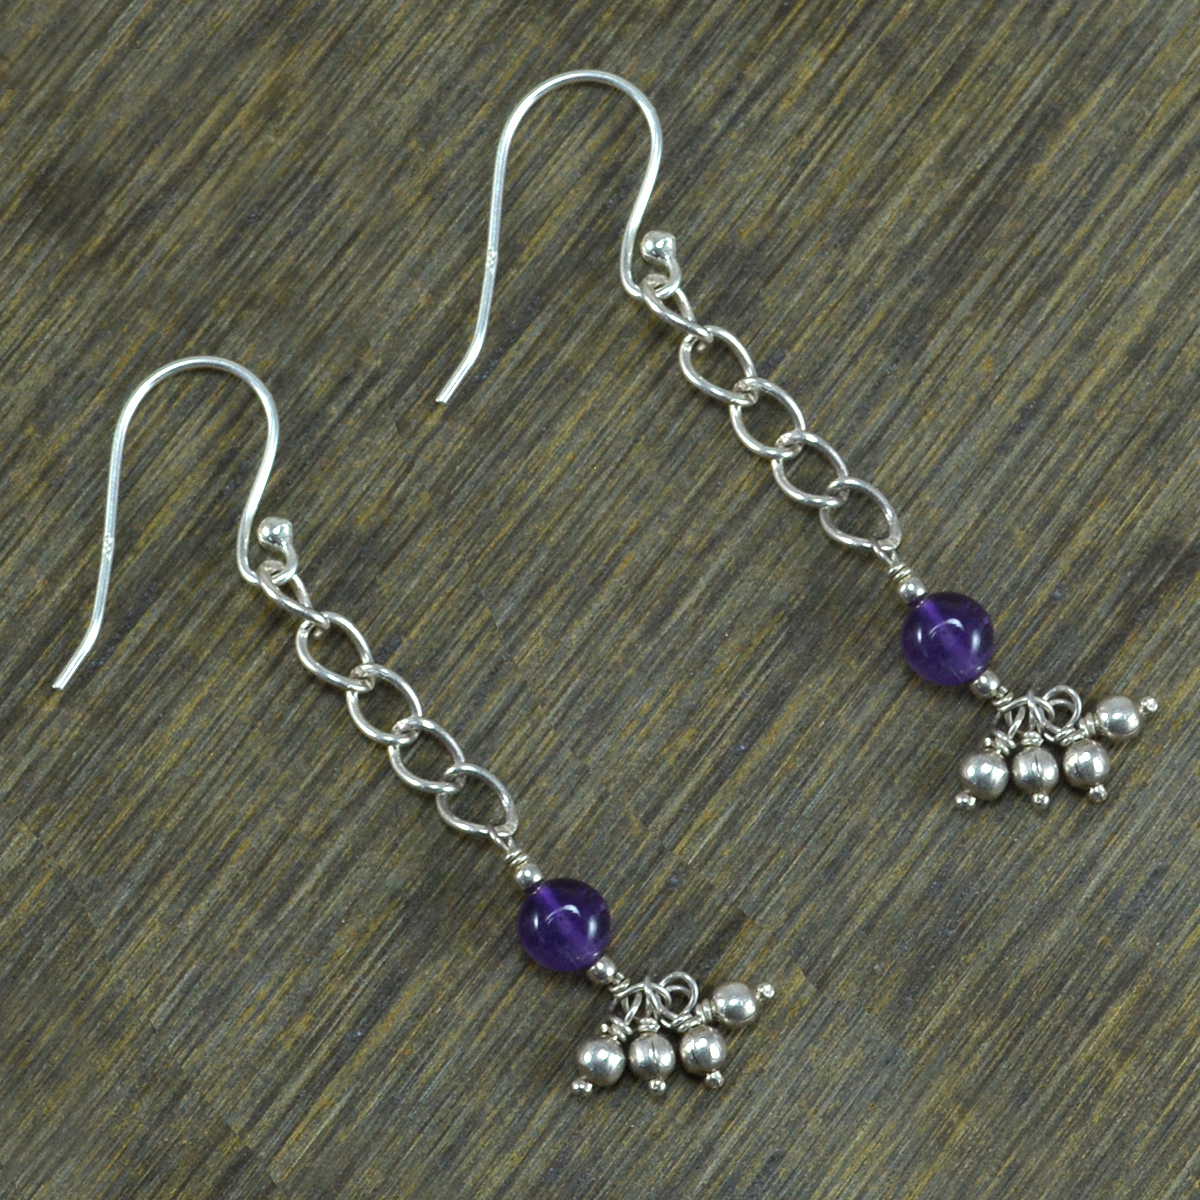 Round Amethyst Gemstone Handmade Jewelry Manufacturer 925 Sterling Silver Fish Hook Jaipur Rajasthan India Dangle Earring